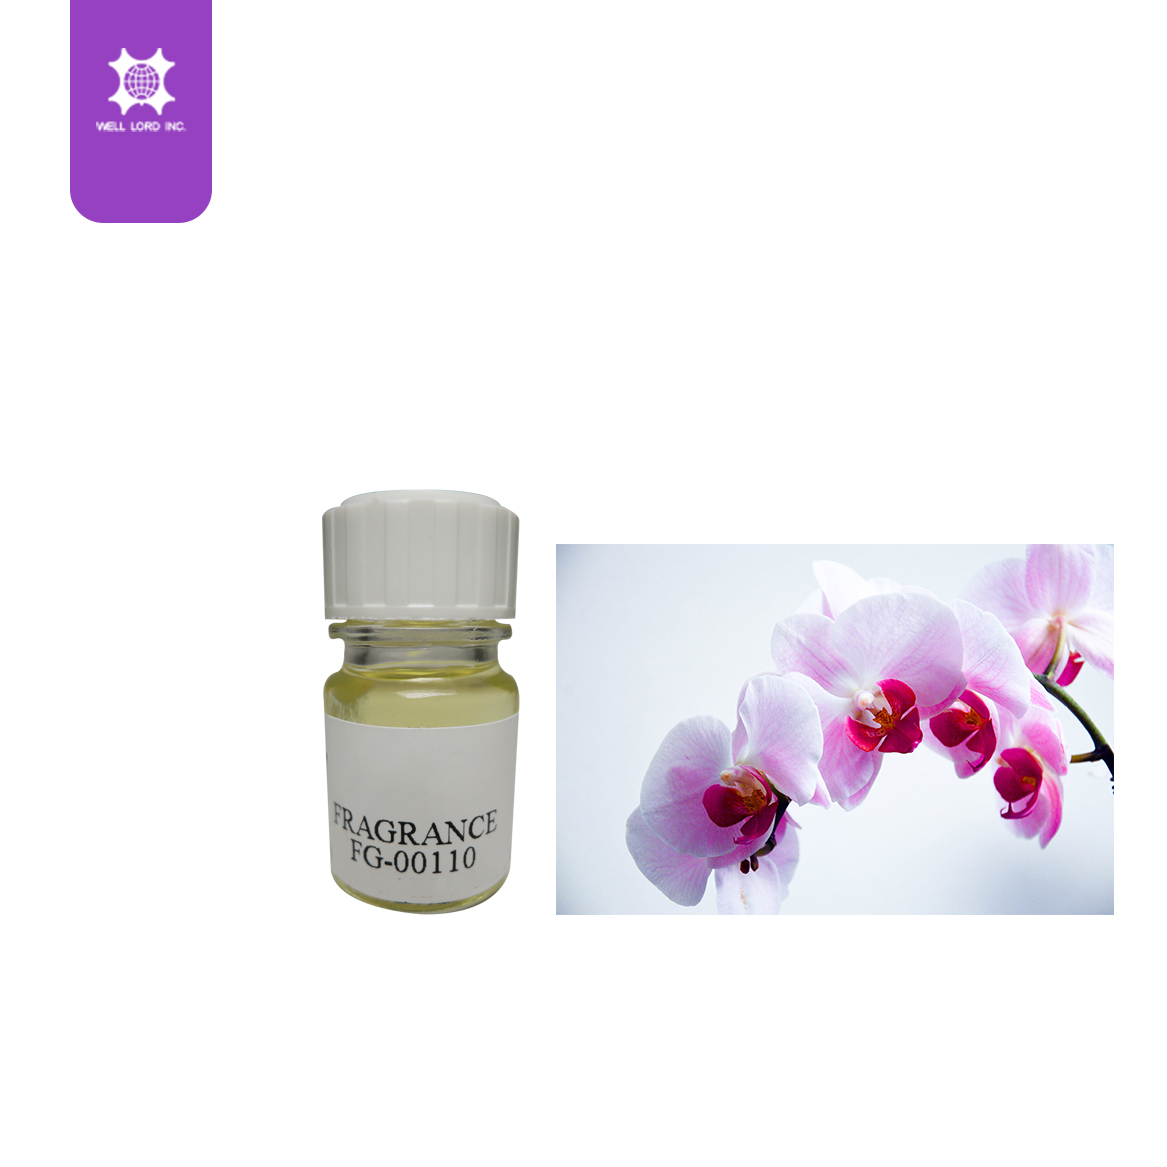 Outstanding overwhelming floral scent special gift for women perfume fragrance oil